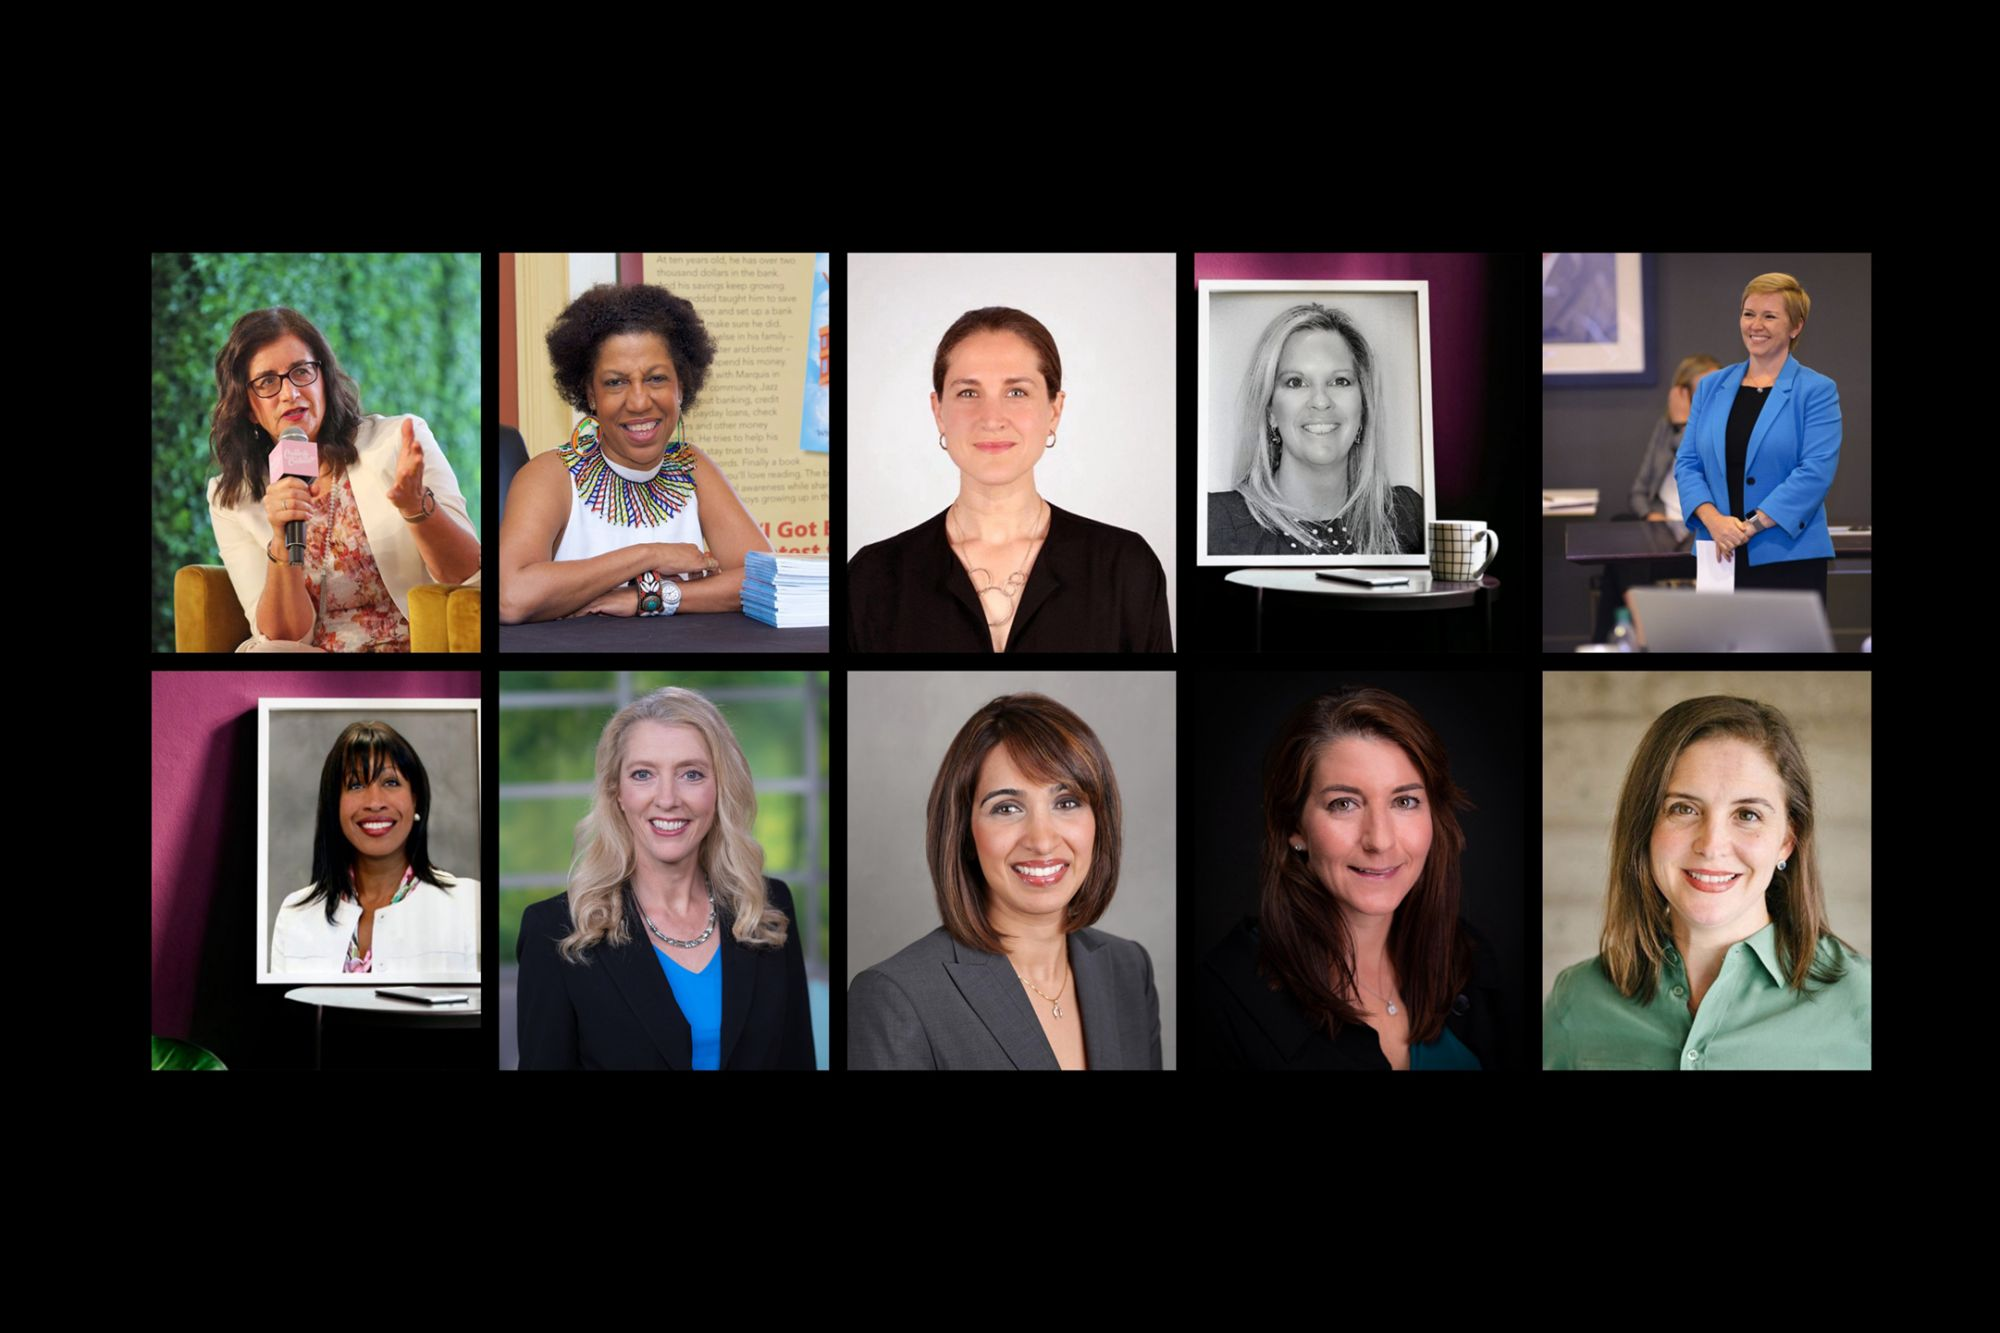 10 Women Leaders In Finance Shares What Is Required to Make the Industry More Gender-Balanced